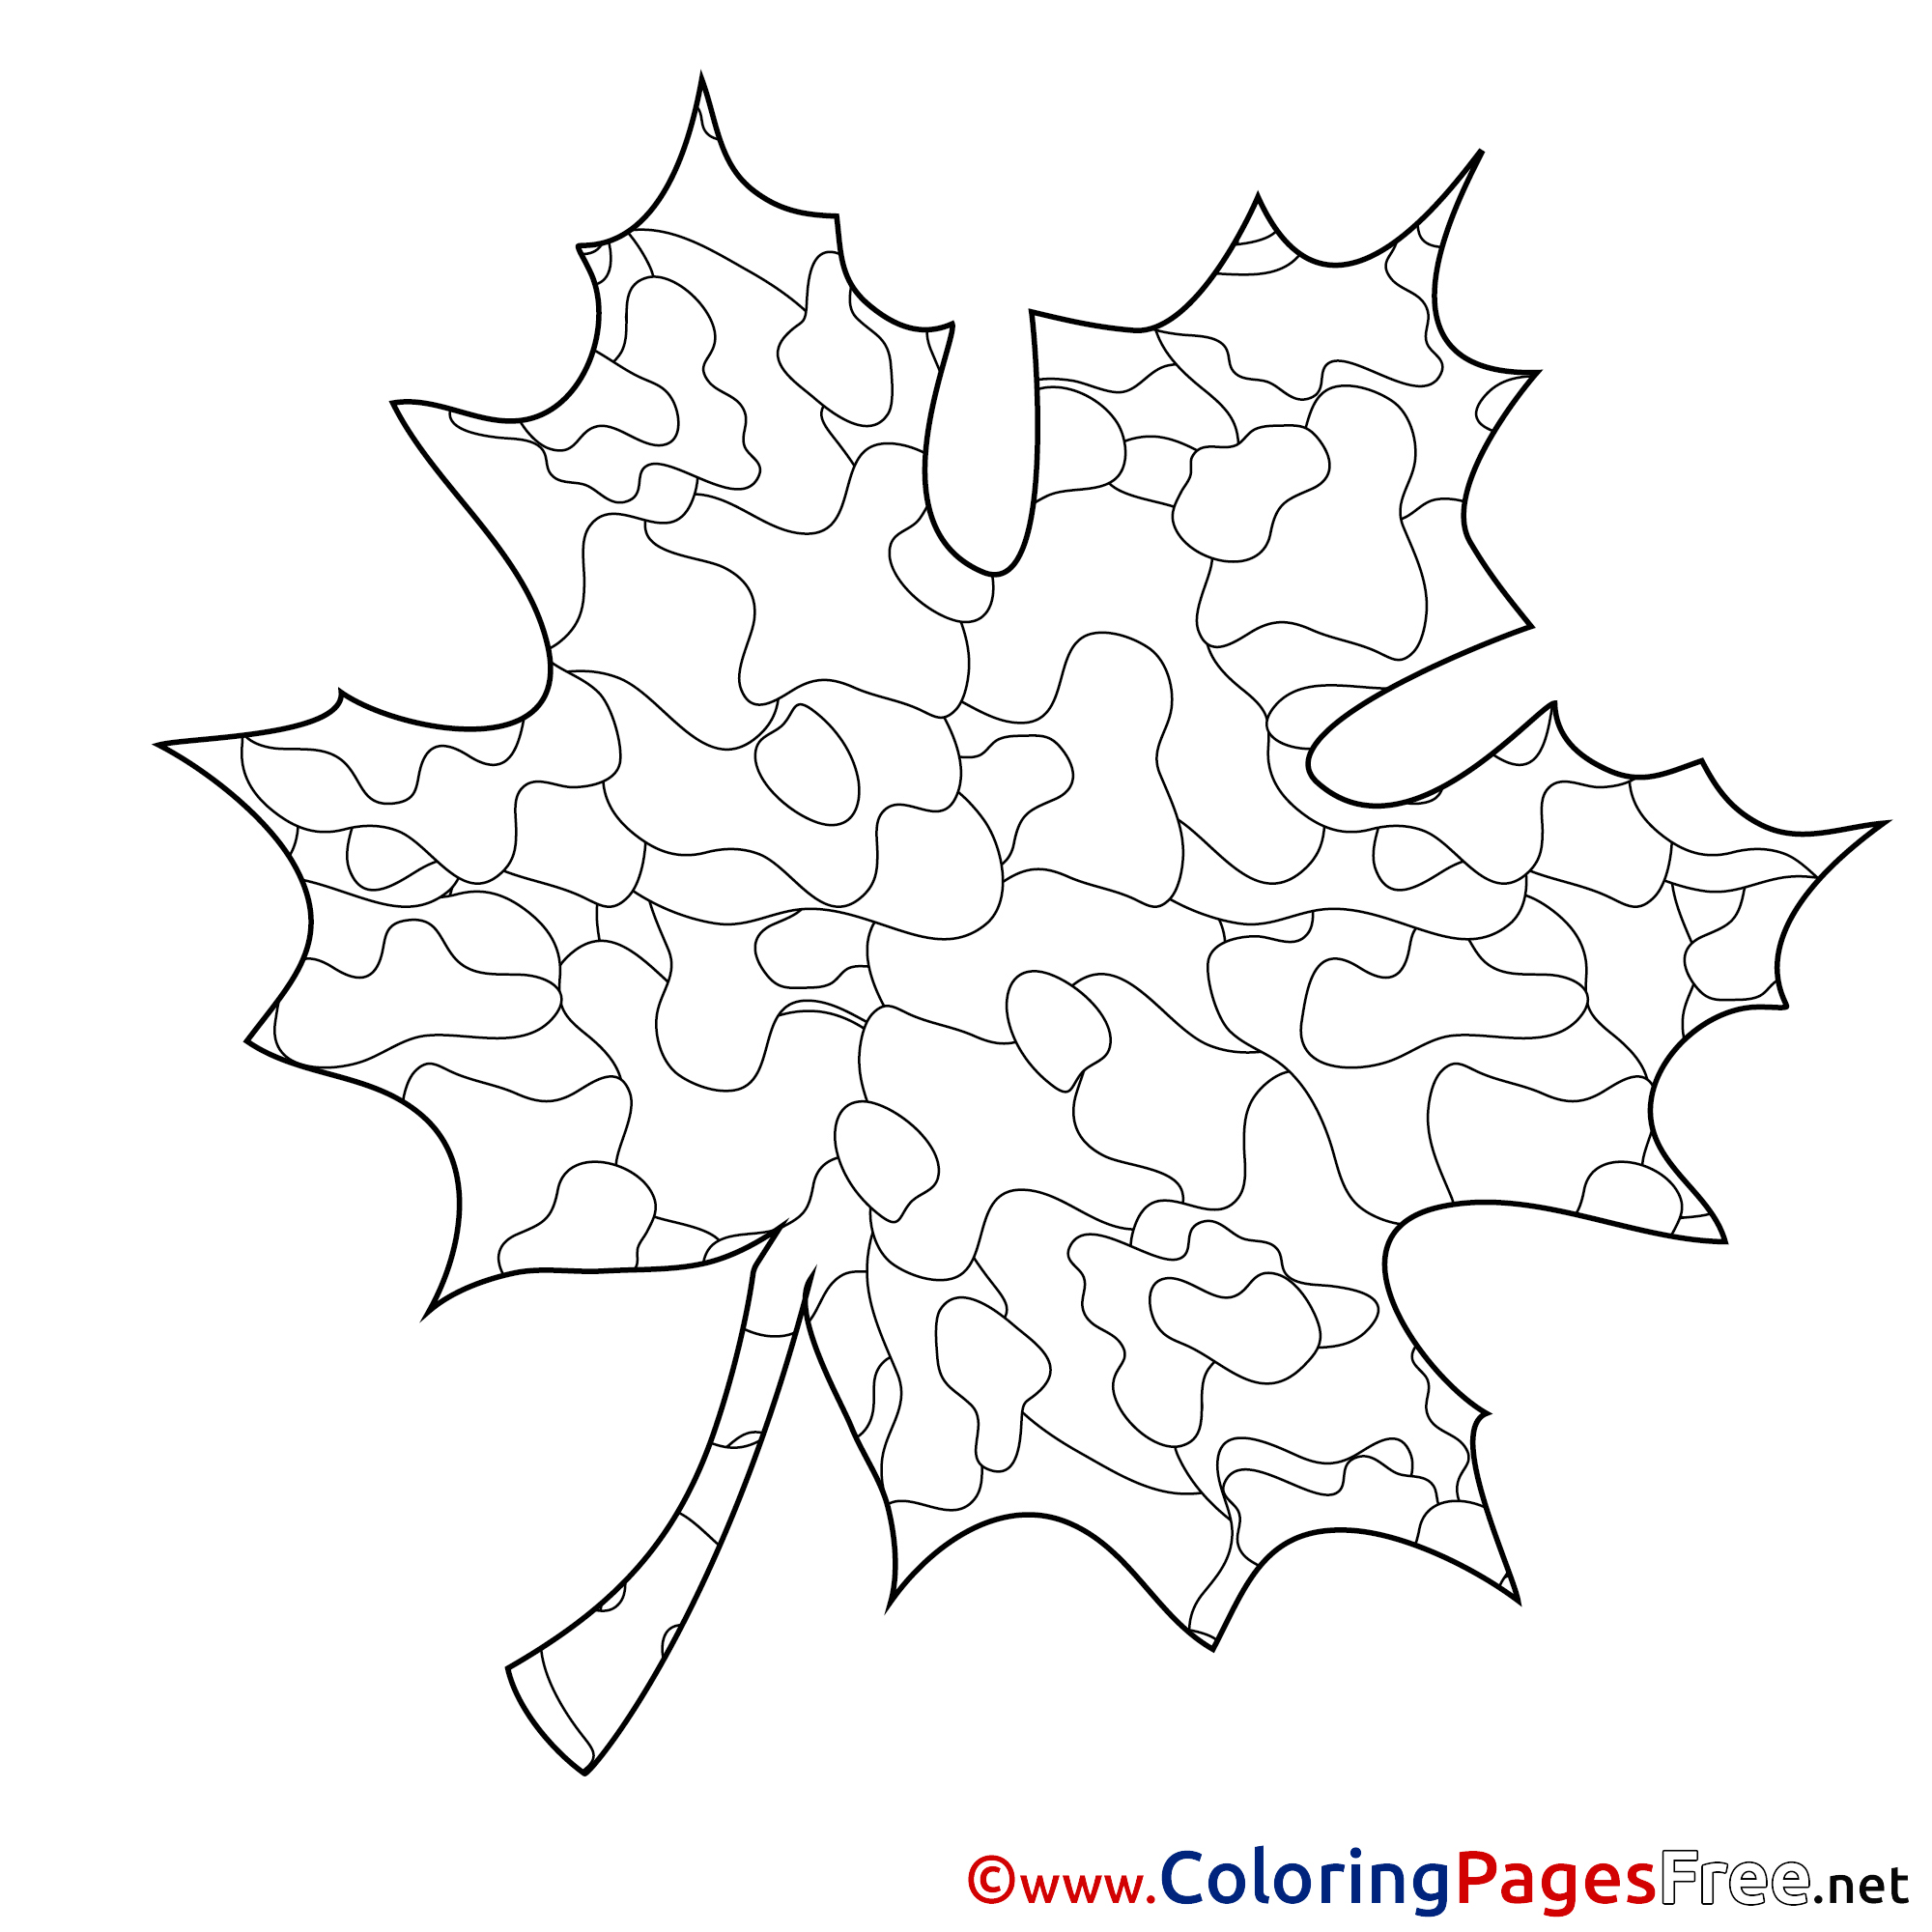 Maple Leaf for Children free Coloring Pages